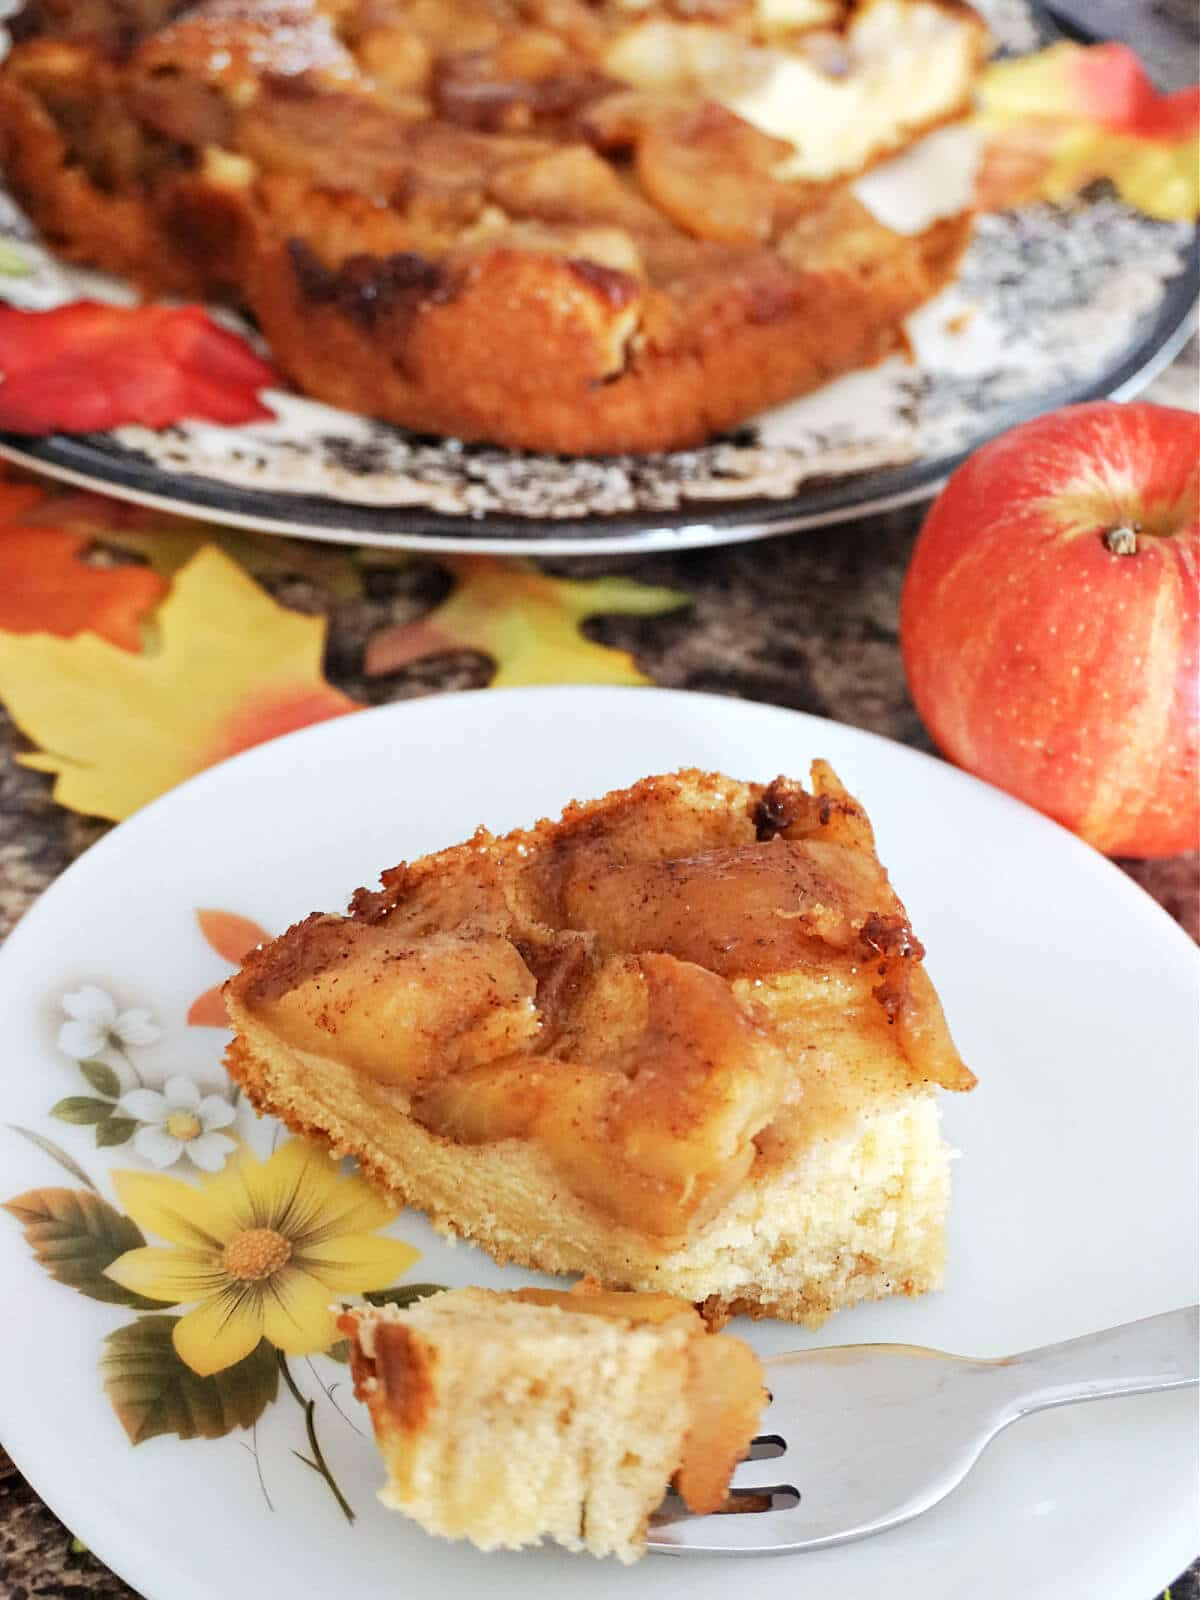 A slice of apple cake on a white plate with more cake in the background